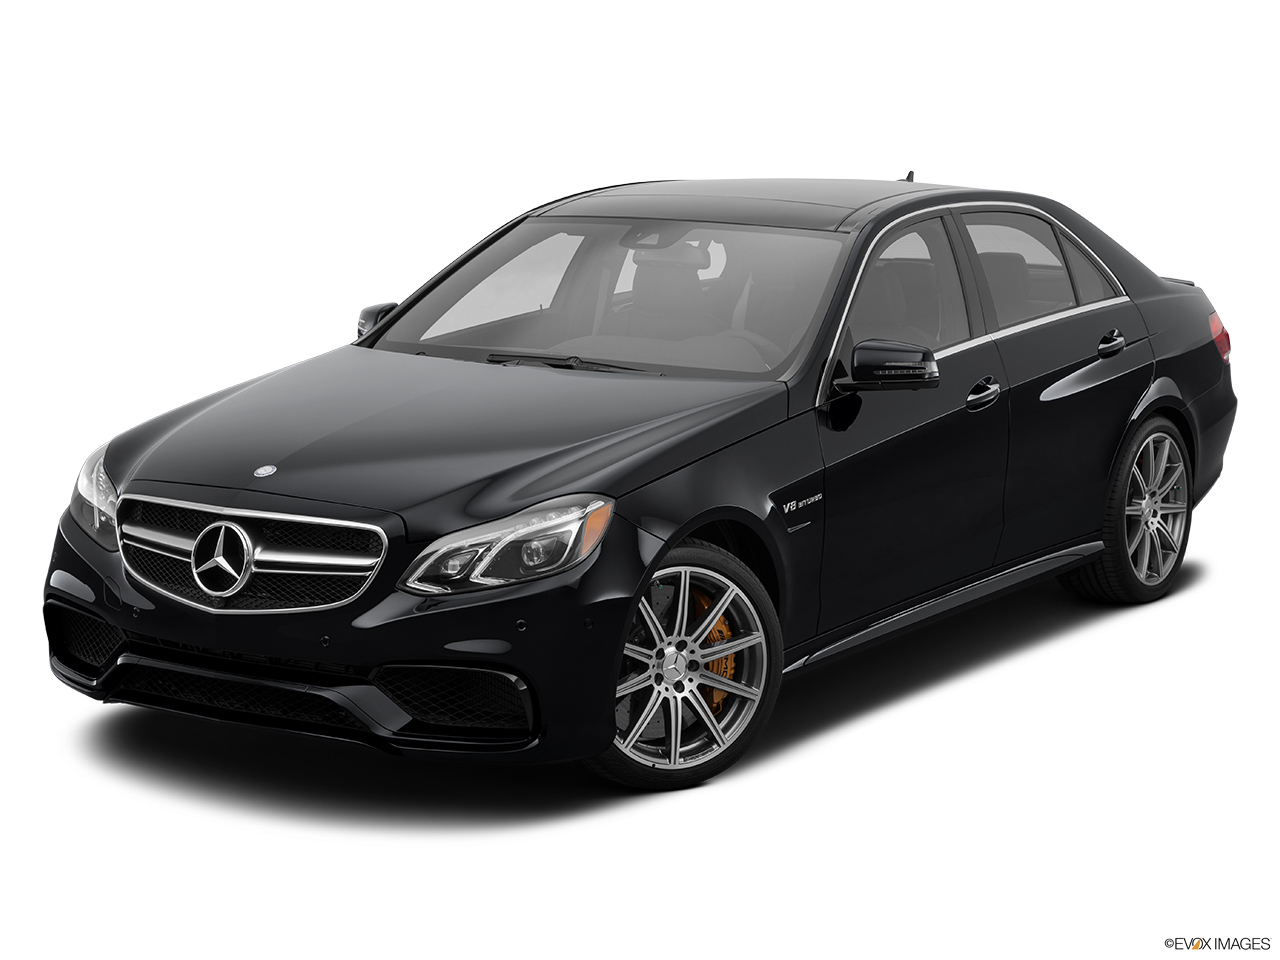 2014 mercedes benz e class sedan e63 amg 4matic for Mercedes benz e class e63 amg